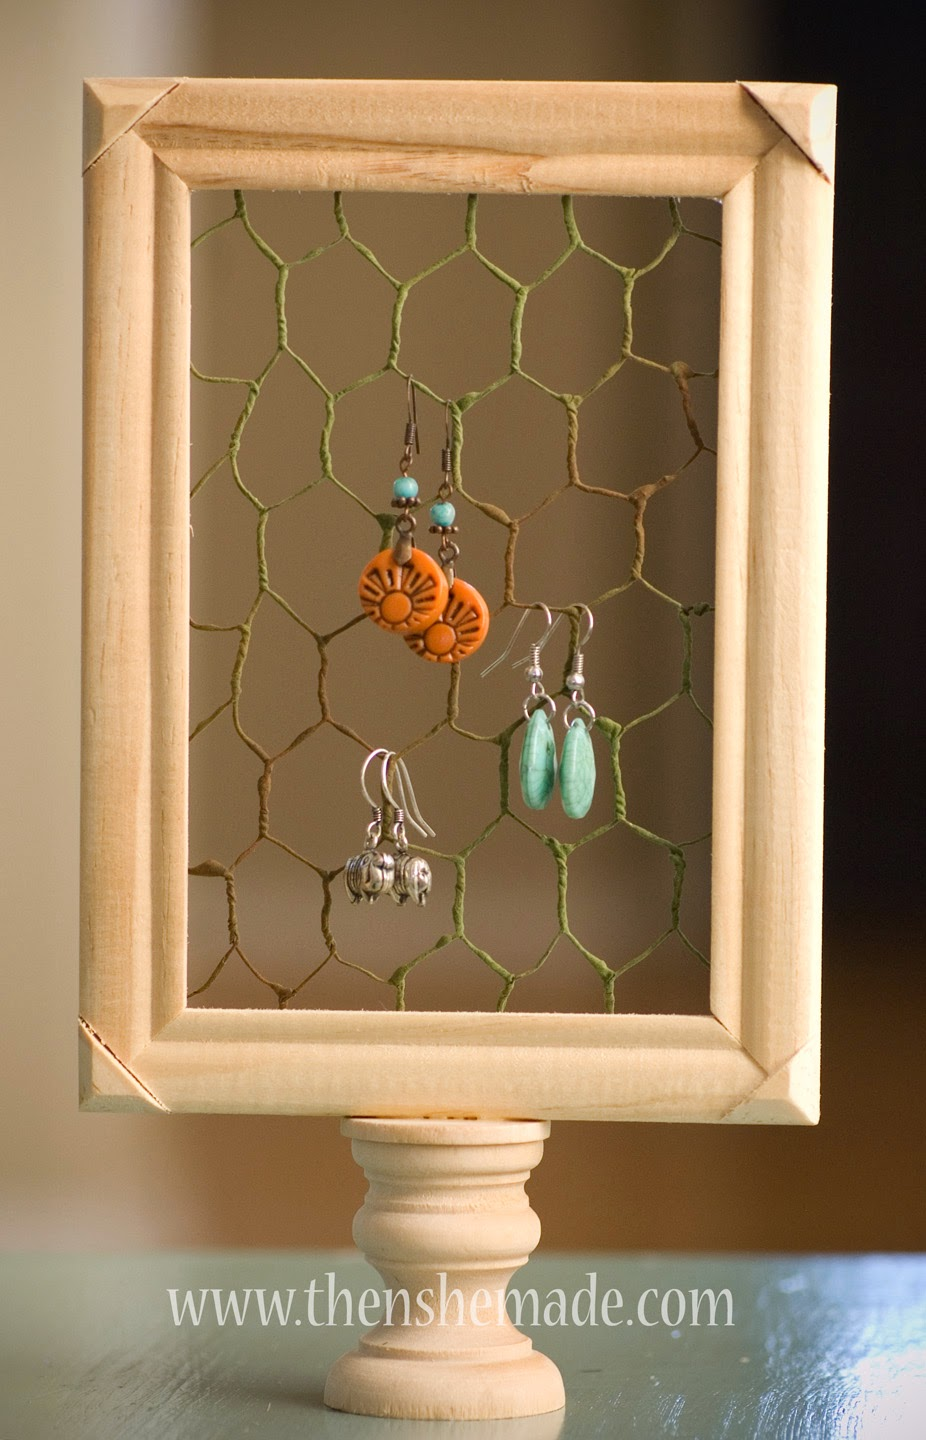 Then she made 0315 a cute little framed pedestal earring holder that can sit on a dresser window sill bathroom counter or other small space jeuxipadfo Image collections